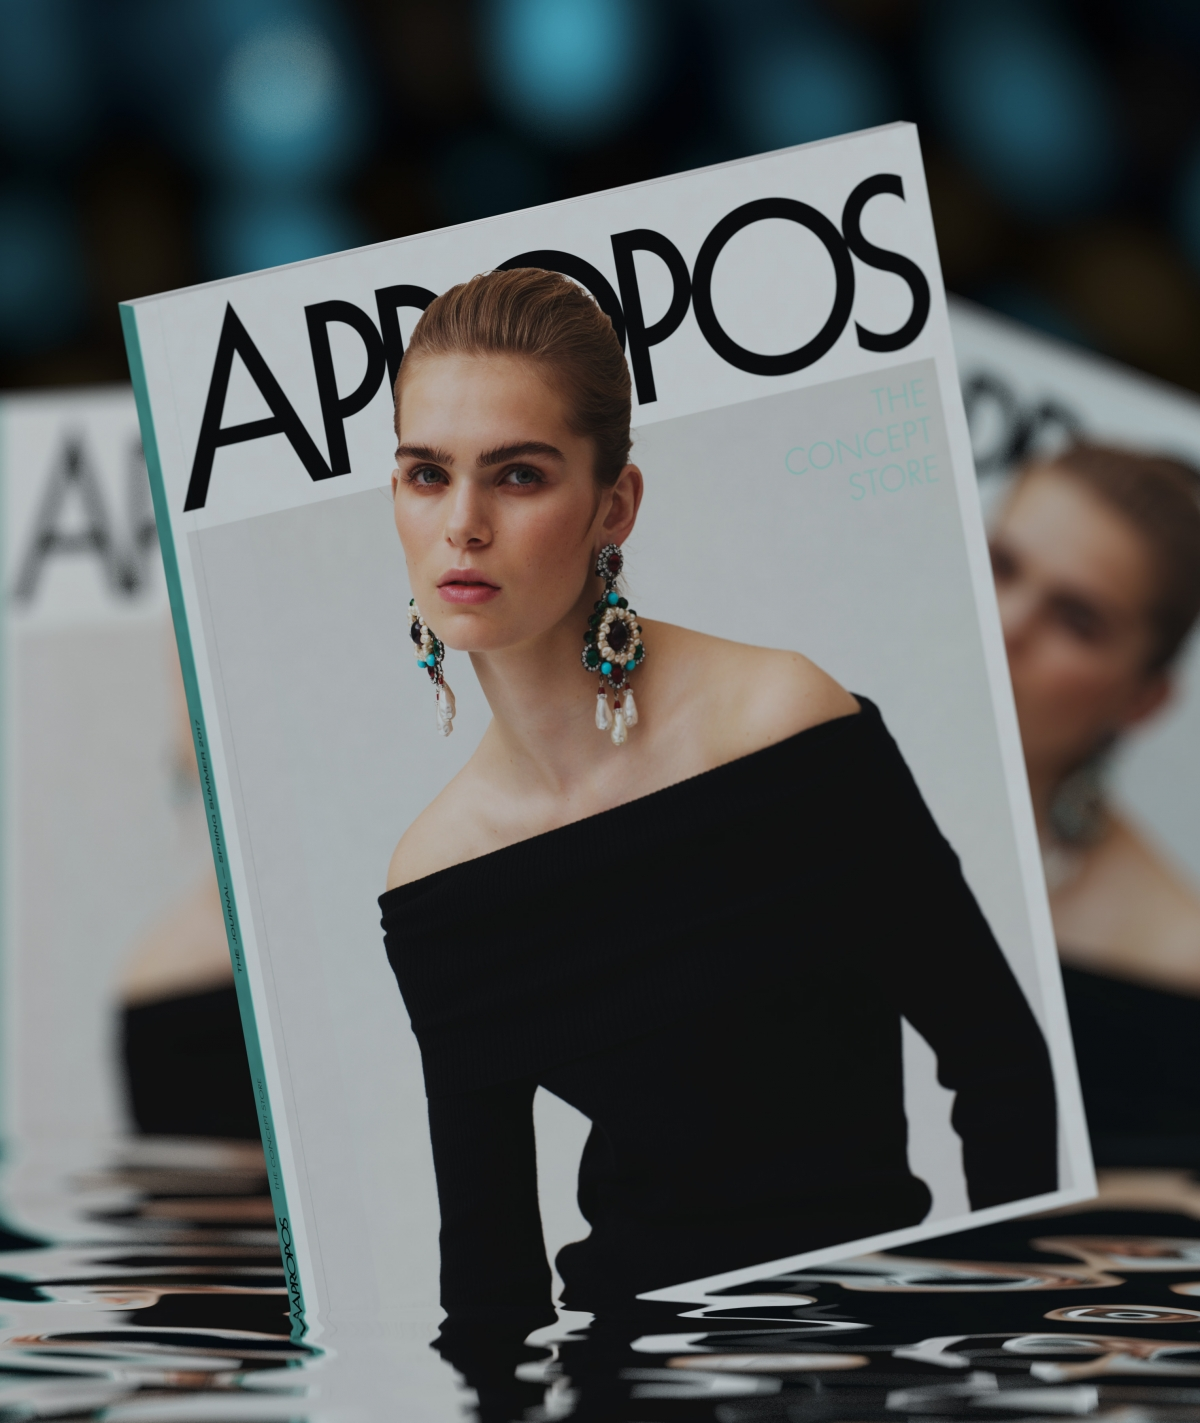 APROPOS – The Journal Spring/Summer 2017